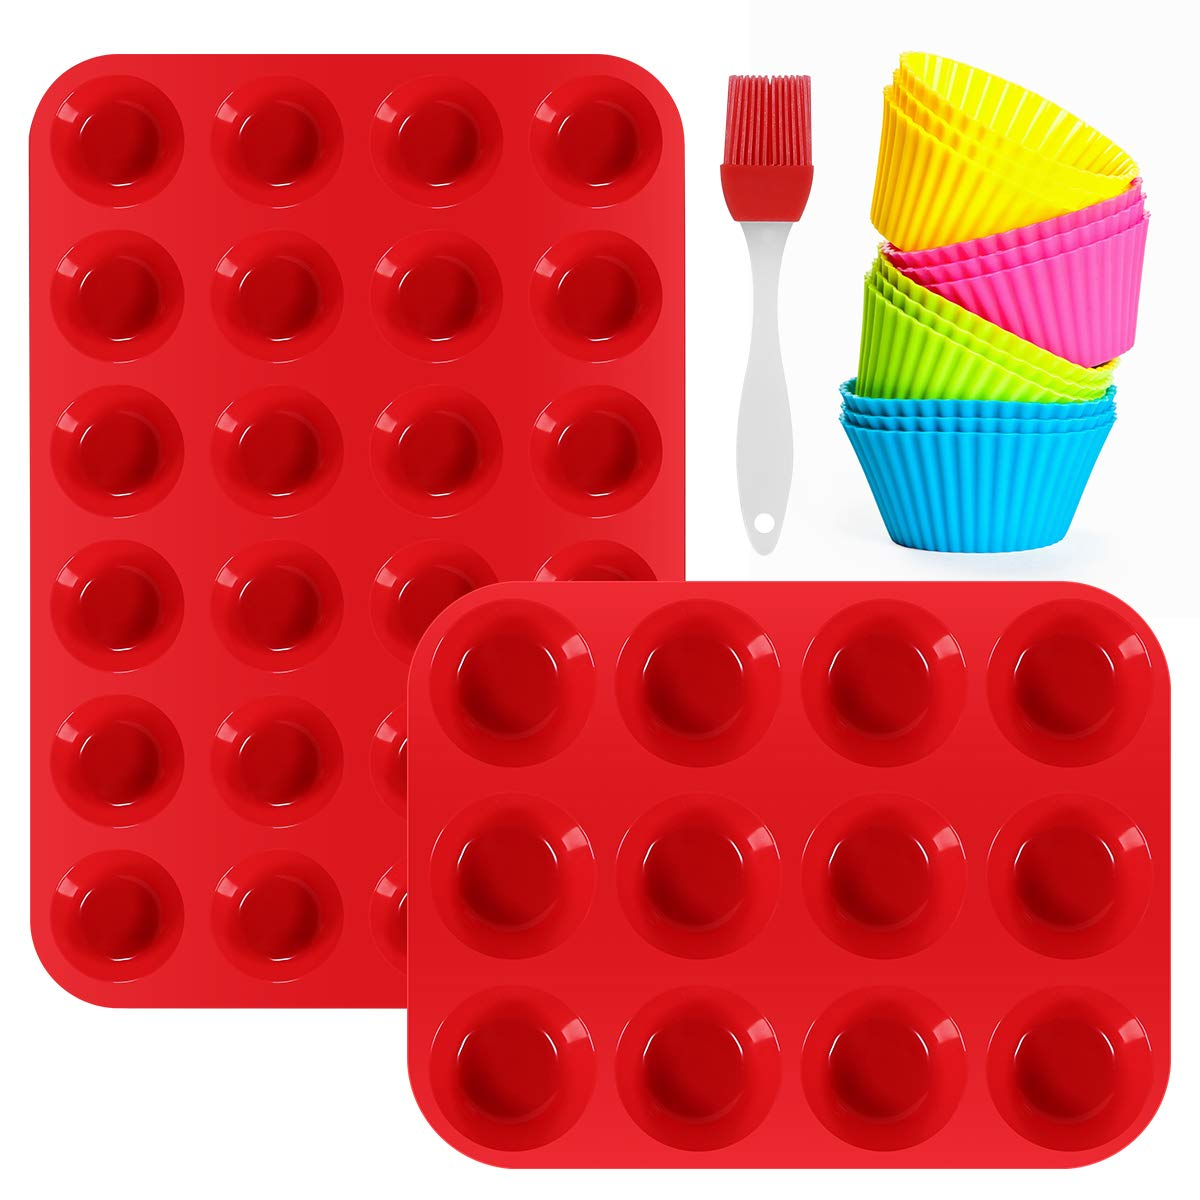 Silicone Muffin Pan Set - 12 Cups & 24 Cups Cupcake Pan, NonstickBest Muffin Pan Baking Trays Silicone Baking Molds with 12 Silicone Baking Cups & Cleaning Brush by WINBLO